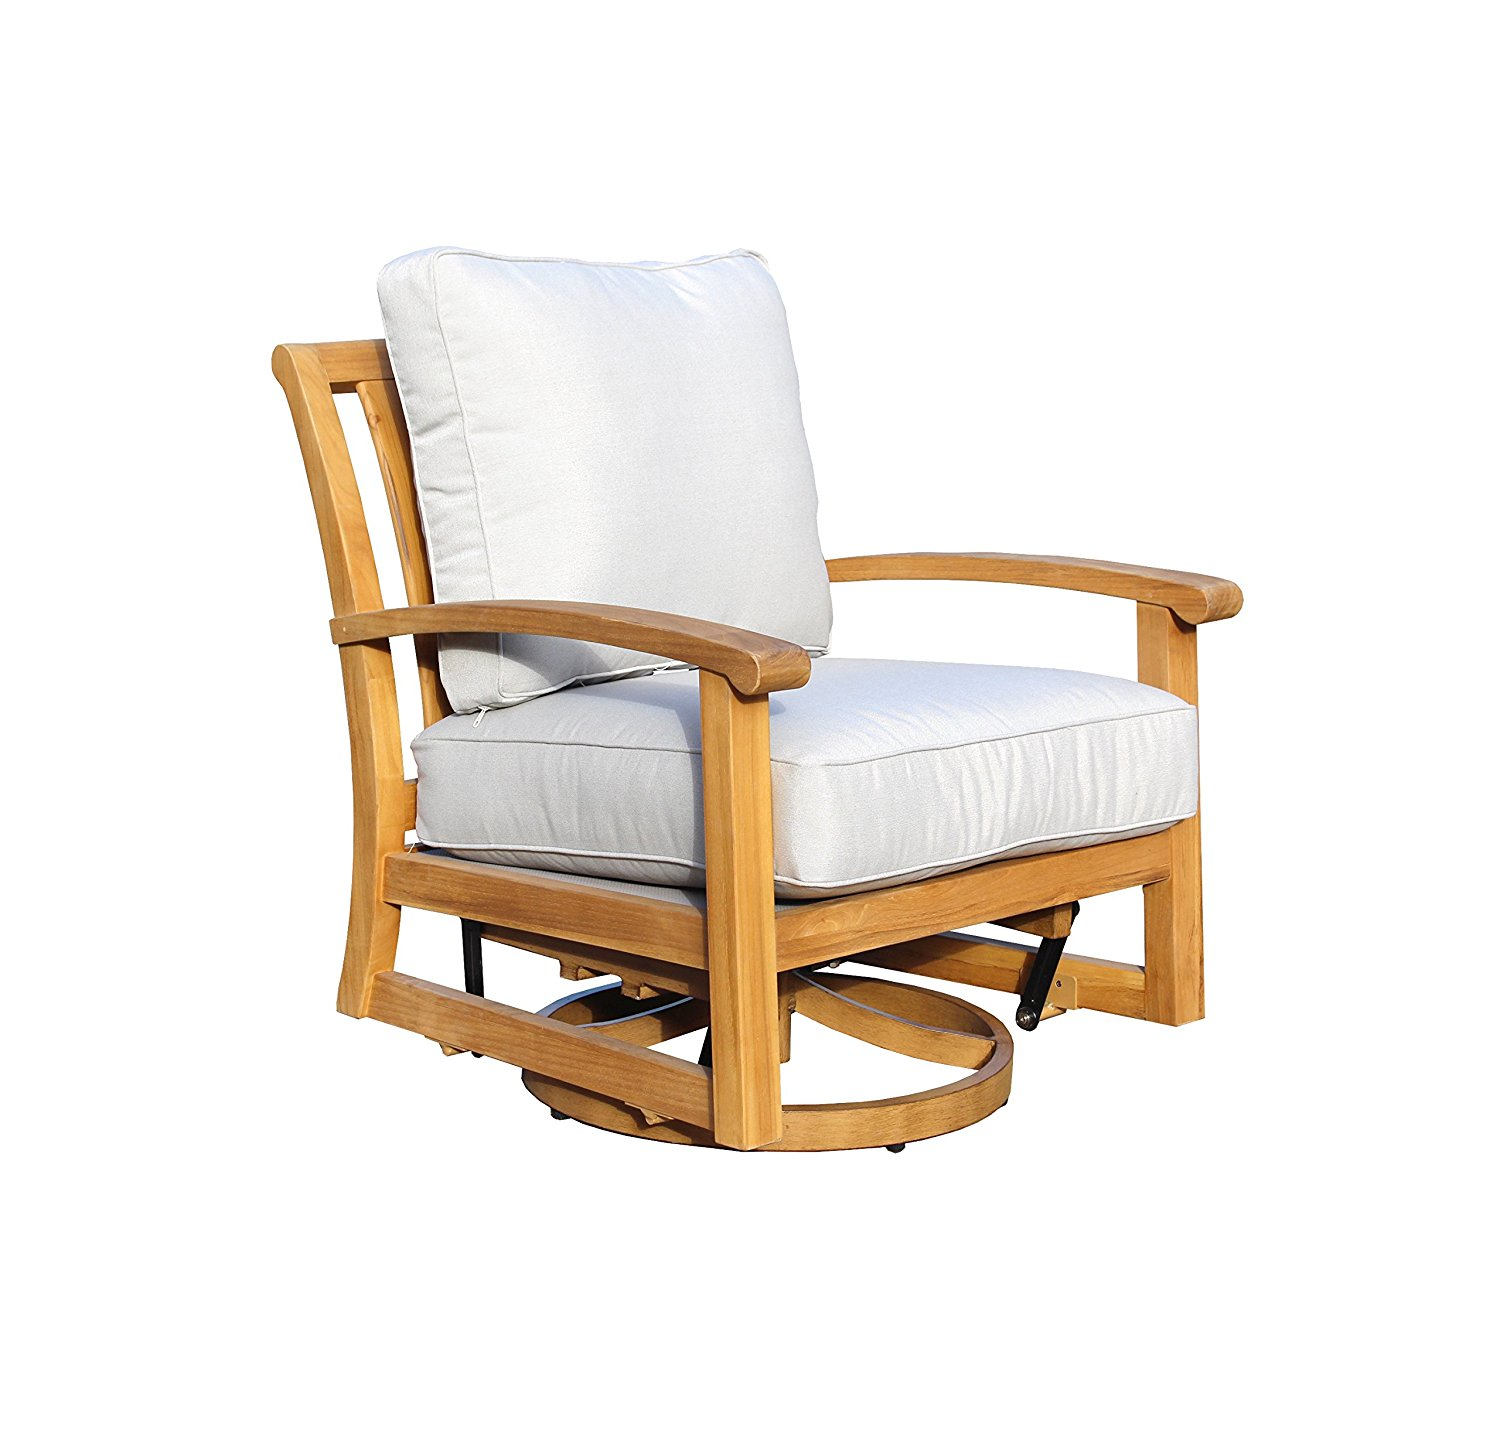 Courtyard Casual Natural Heritage Outdoor Teak Swivel Chair